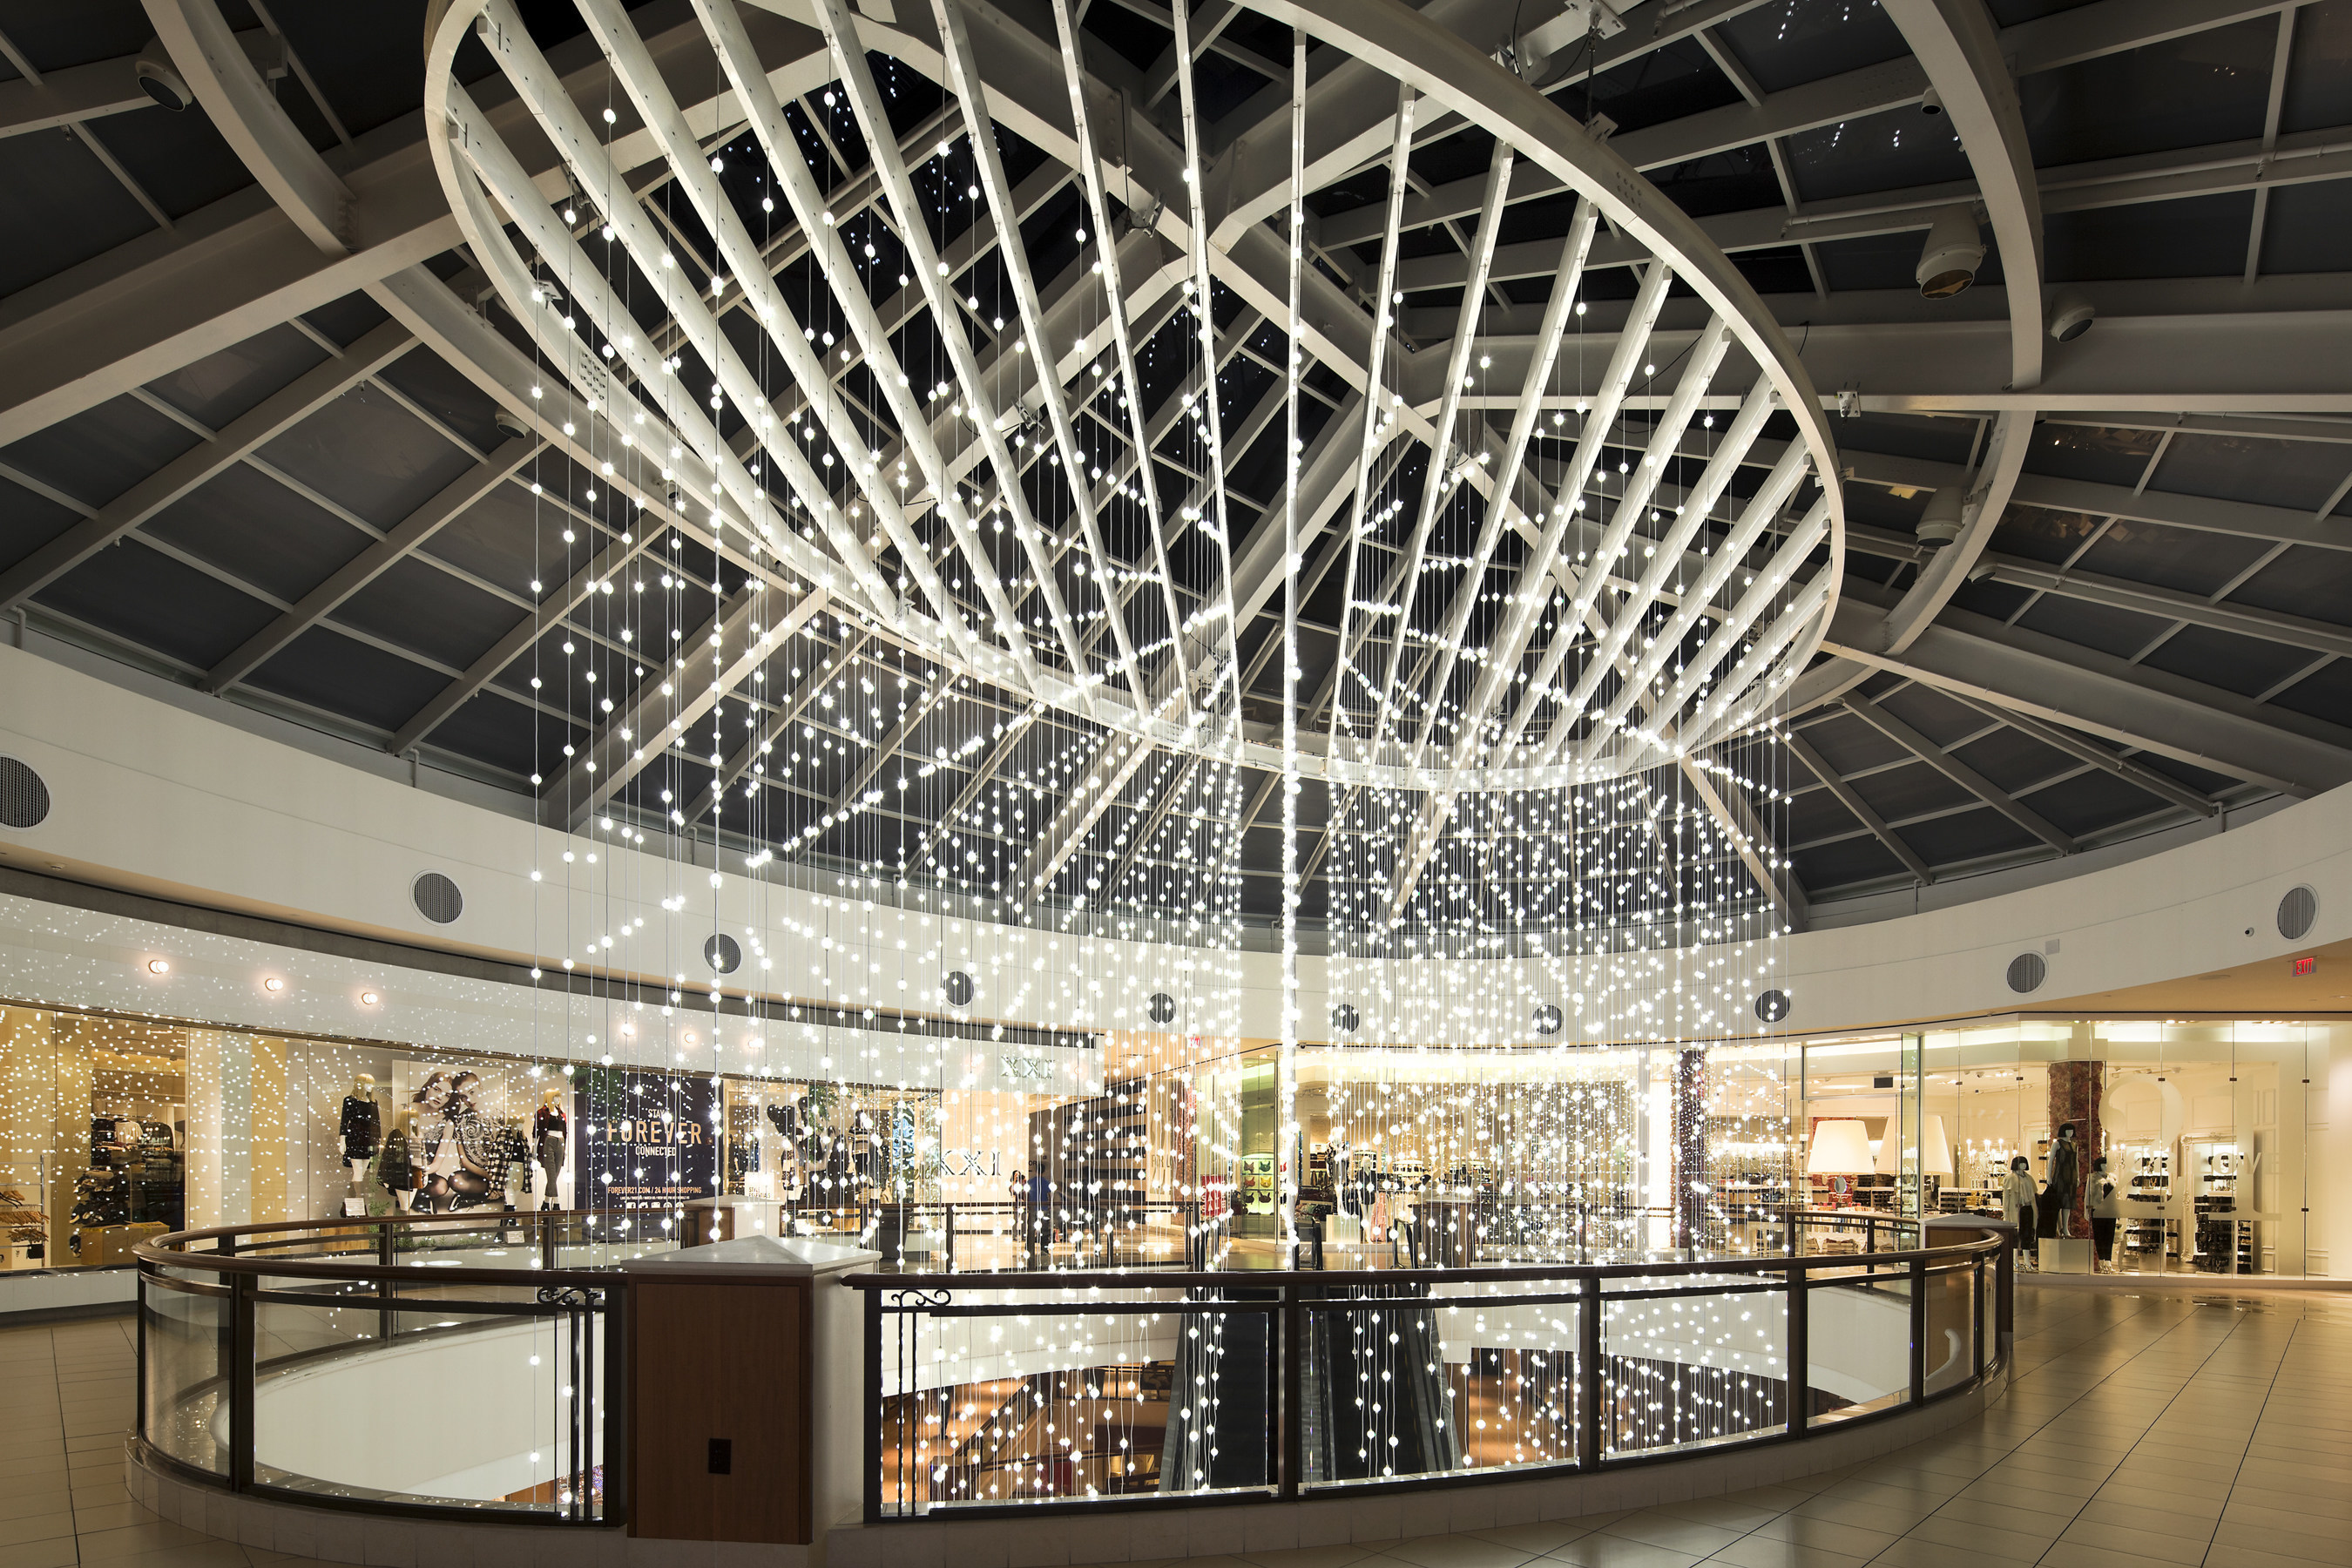 Aventura Mall's Twinkling Snowfall LED Installation, created by Snarkitecture, invites shoppers to experience the sensation of being swept into the middle of a wintery snowfall that appears to be floating down through the skylight of the three-story atrium.